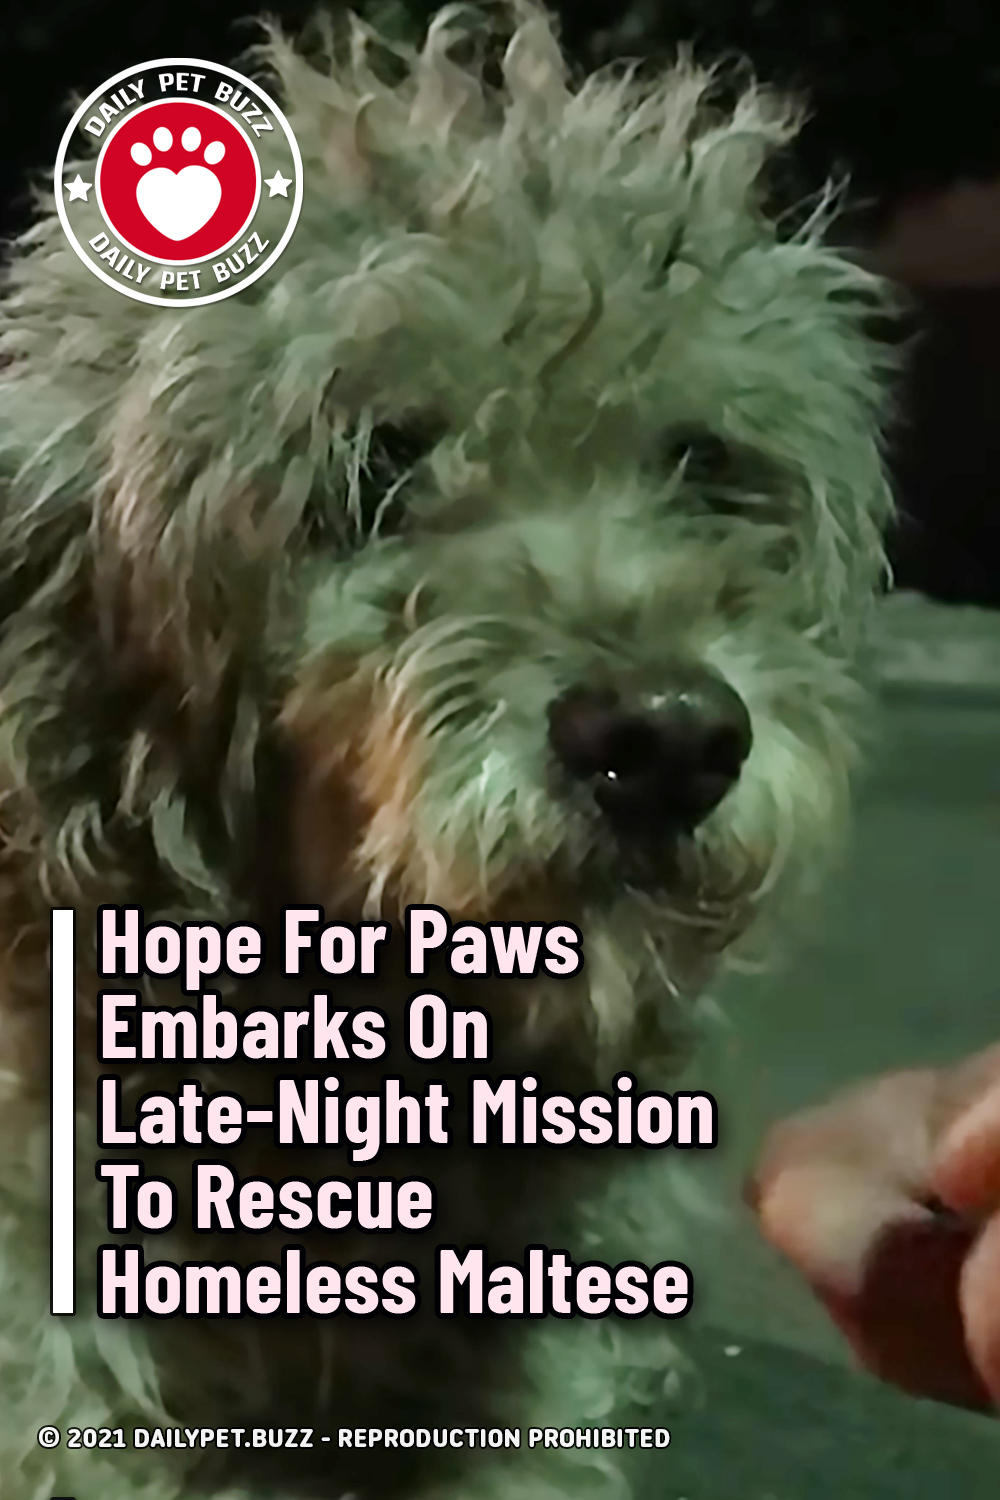 Hope For Paws Embarks On Late-Night Mission To Rescue Homeless Maltese